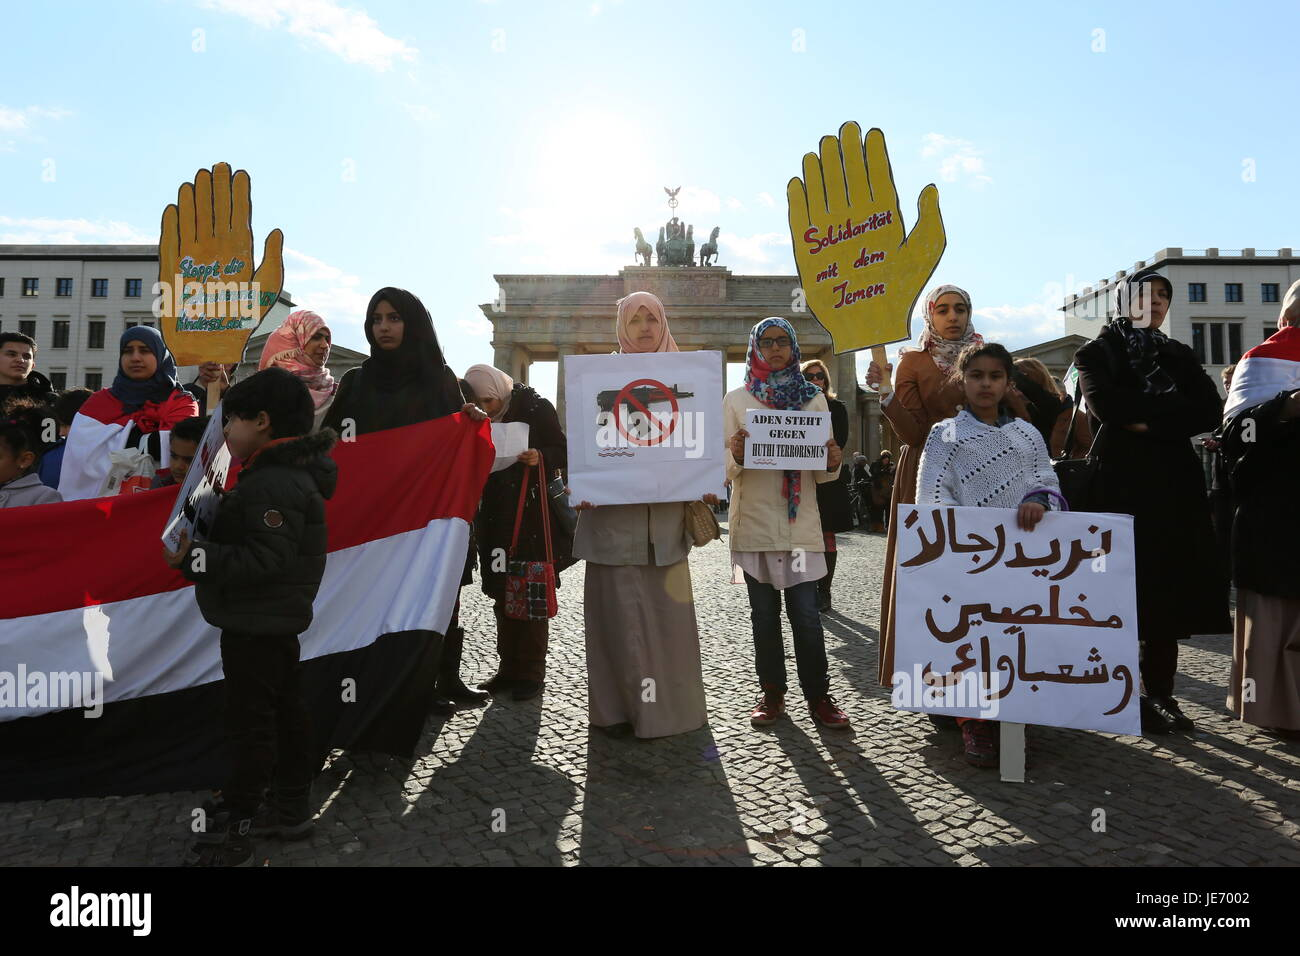 Berlin, Germany, April 18th, 2015: Yemenis hold protest against war at Brandenburg Gate. - Stock Image